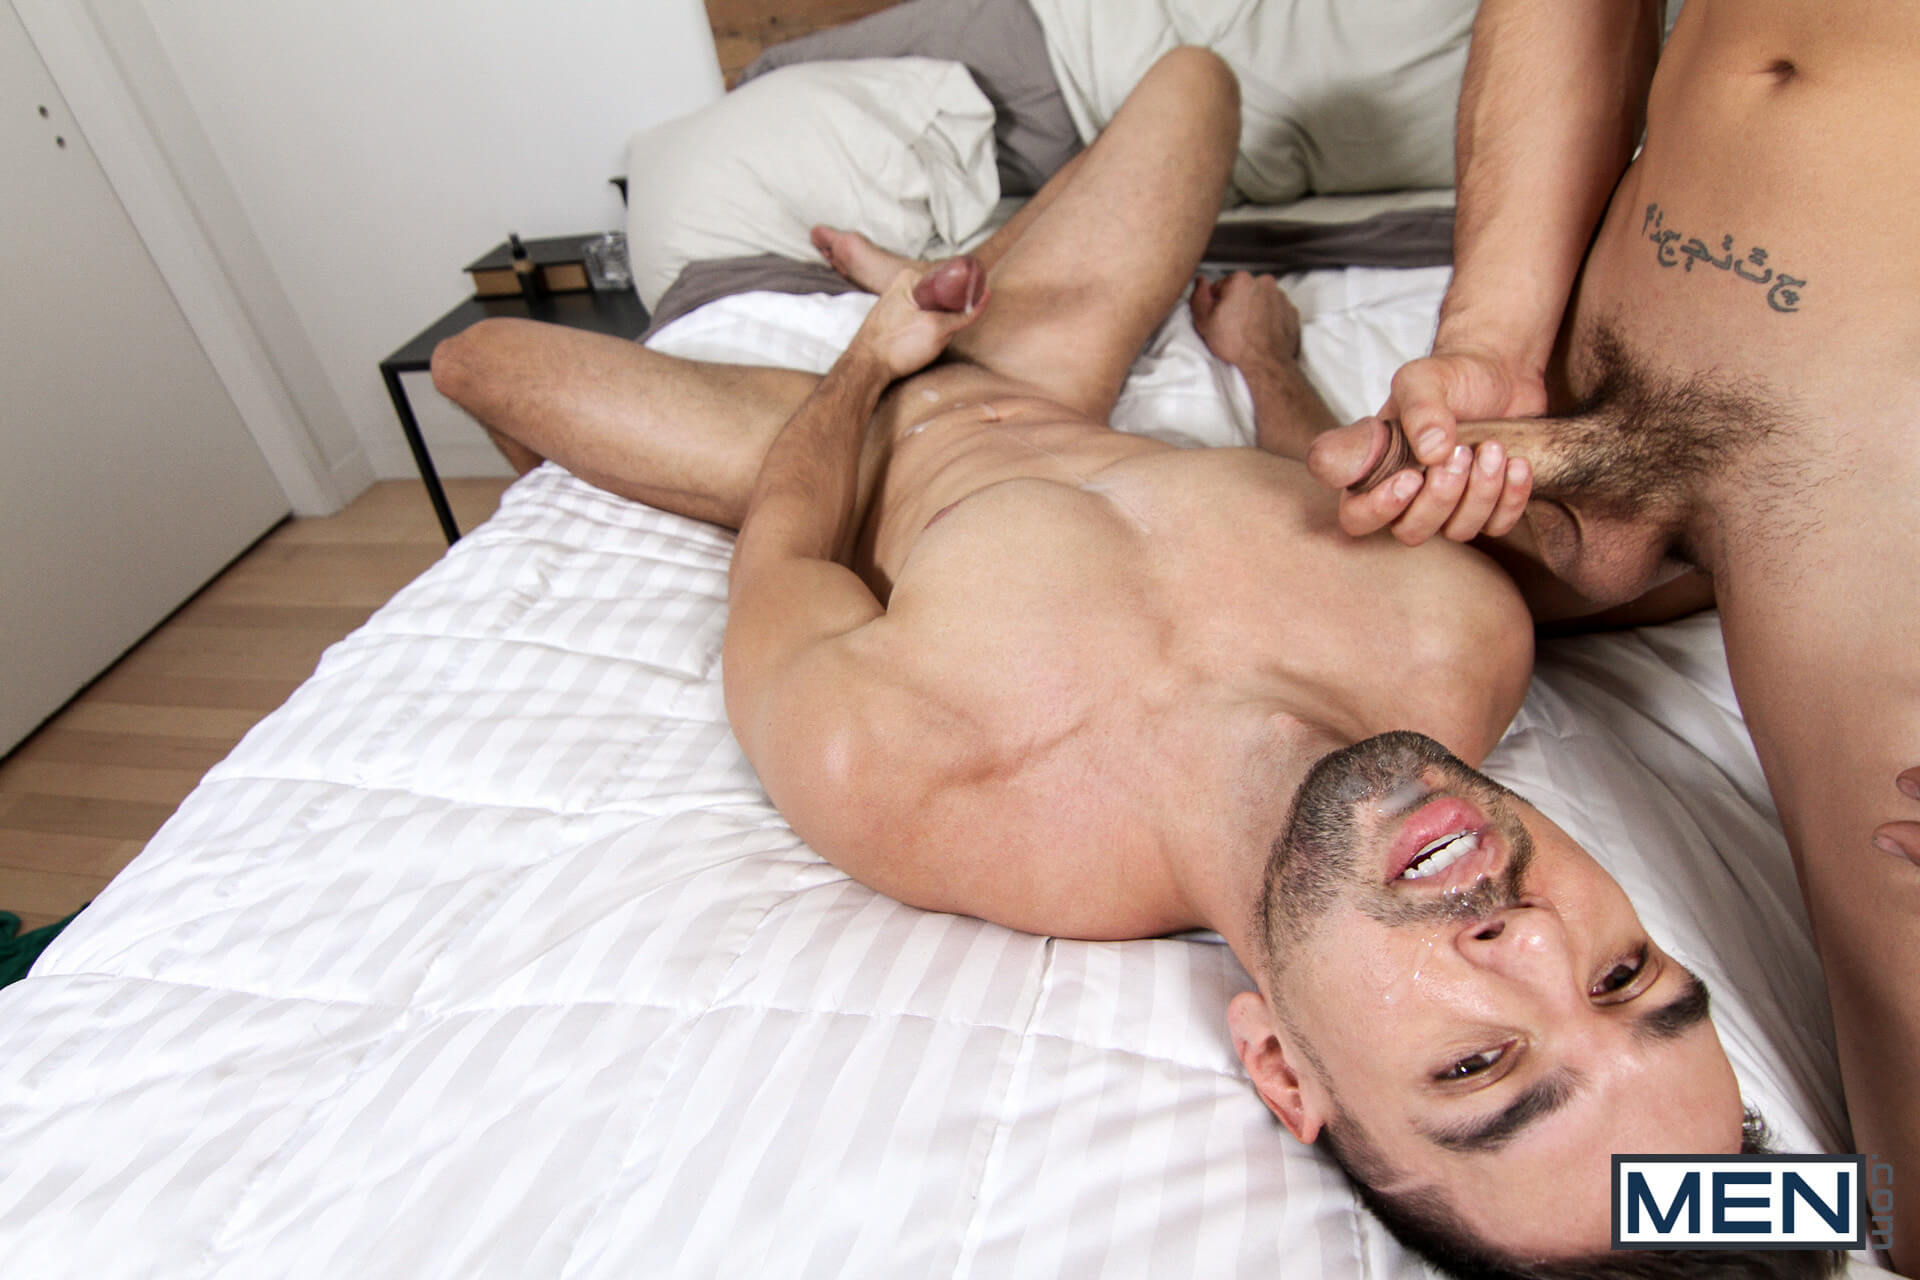 men str8 to gay ride part 2 lucky daniels topher di maggio gay porn blog image 25